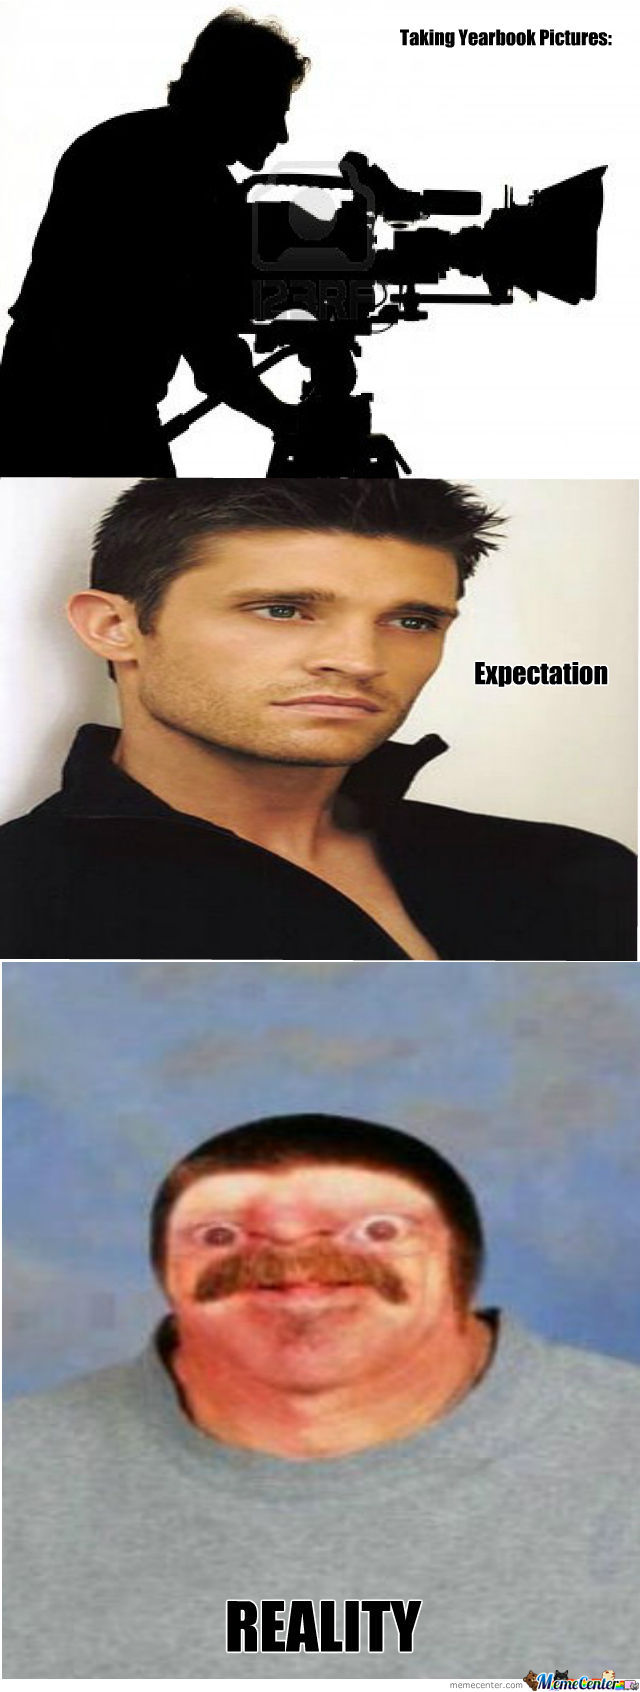 Photography: Expectations Vs. Reality